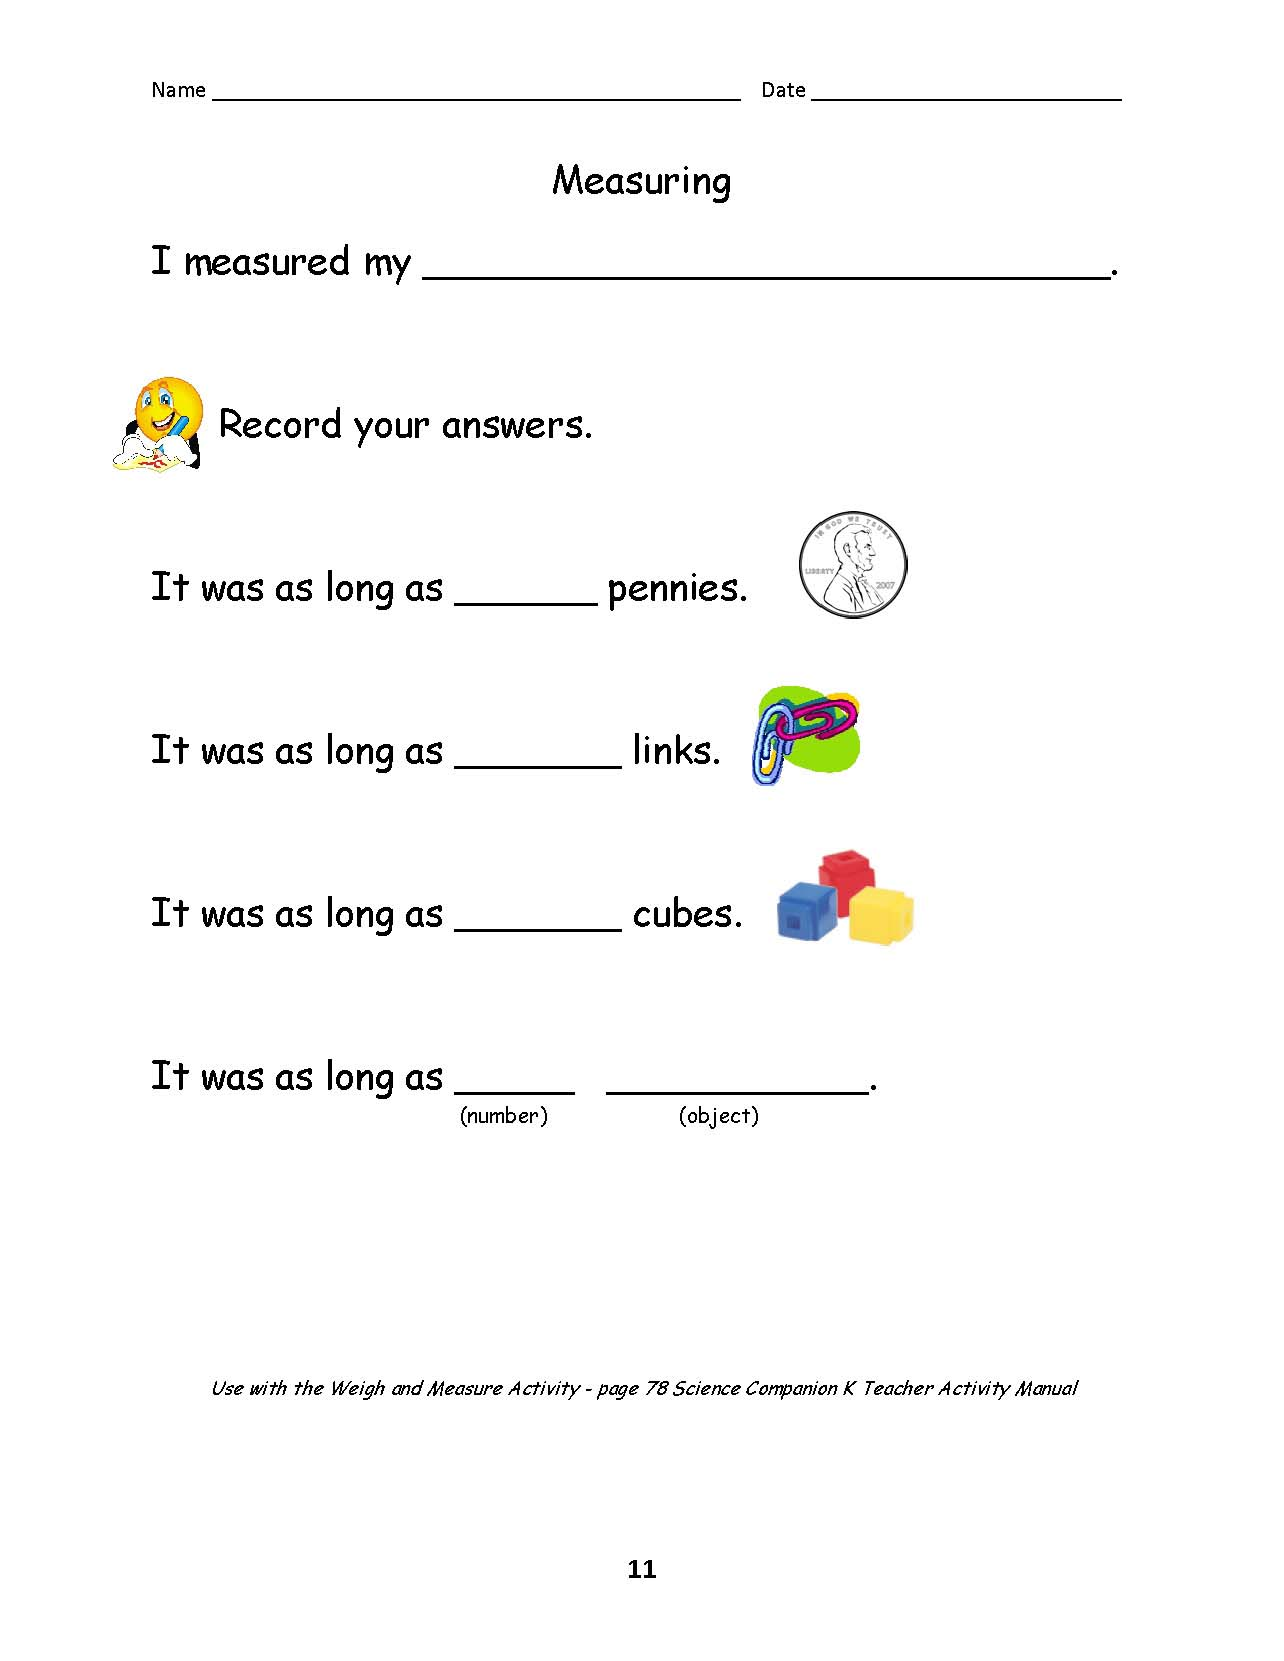 Science and Children Online Connections – Graphic Sources Worksheets